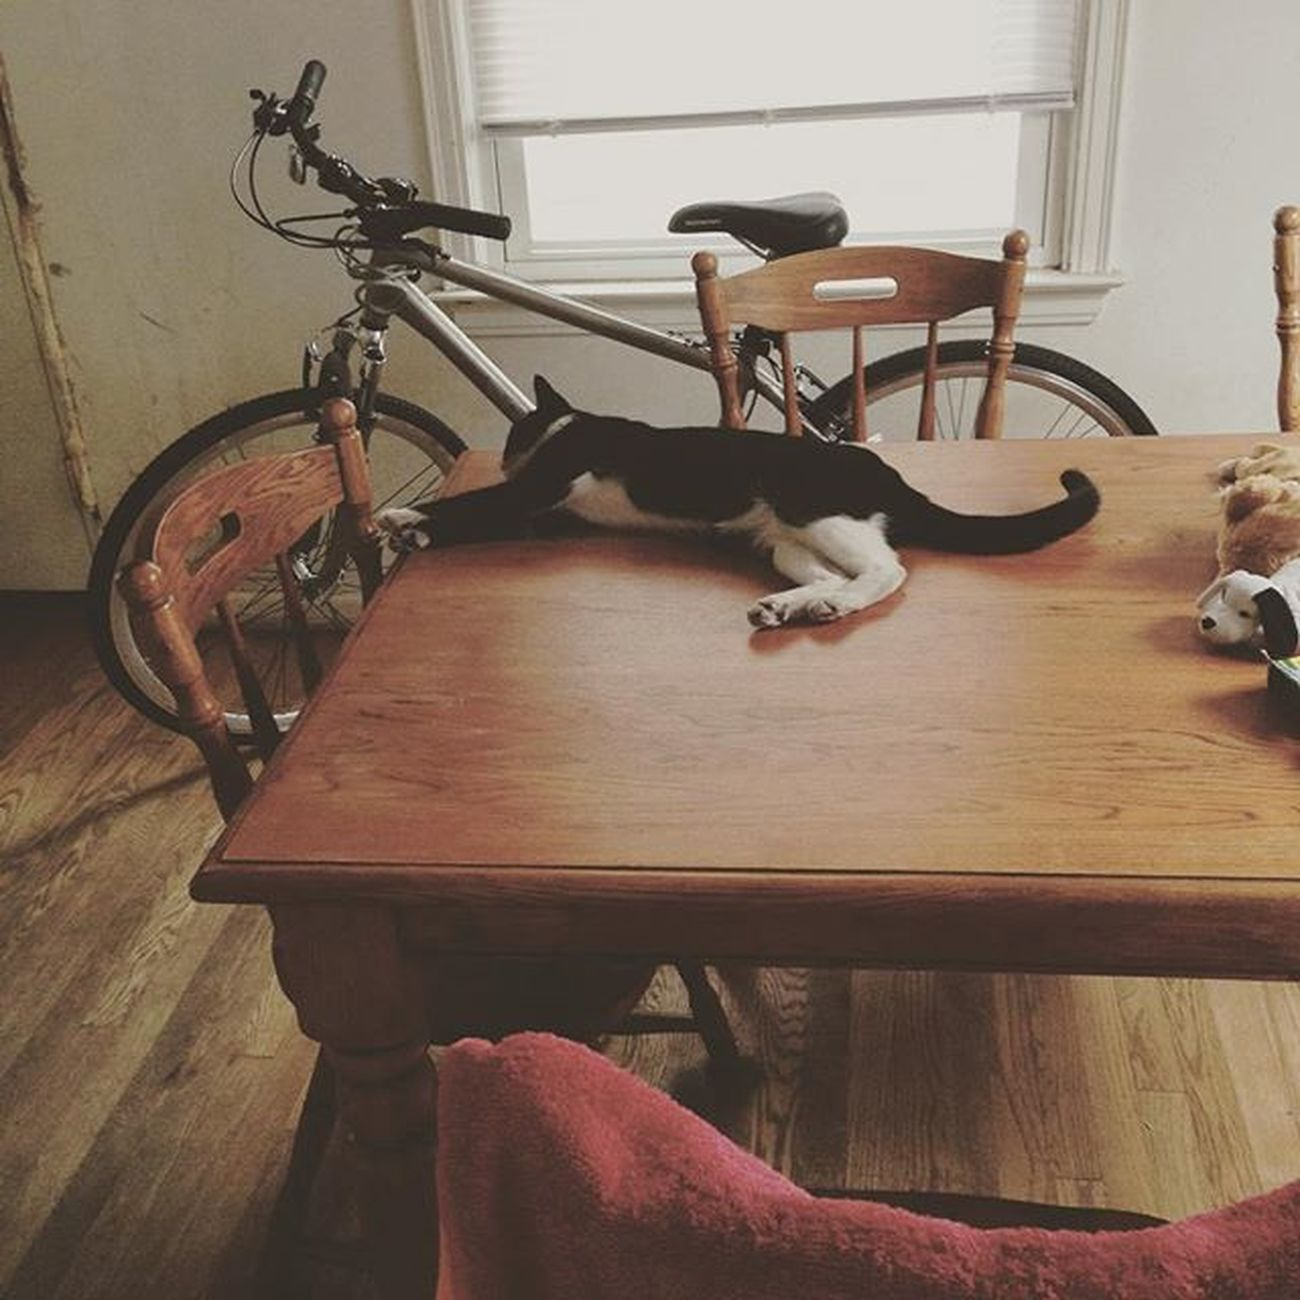 Best view ever. ❤️ she went missing last night and I wouldn't sleep until I found her. She was found at 3 am, and that's why I didn't sleep well. ( she's not allowed on the table ) Cat Cute Messytable Bike Blackandwhitecat Waslost Nowimfound Kitty Meow Aly_washere Dj